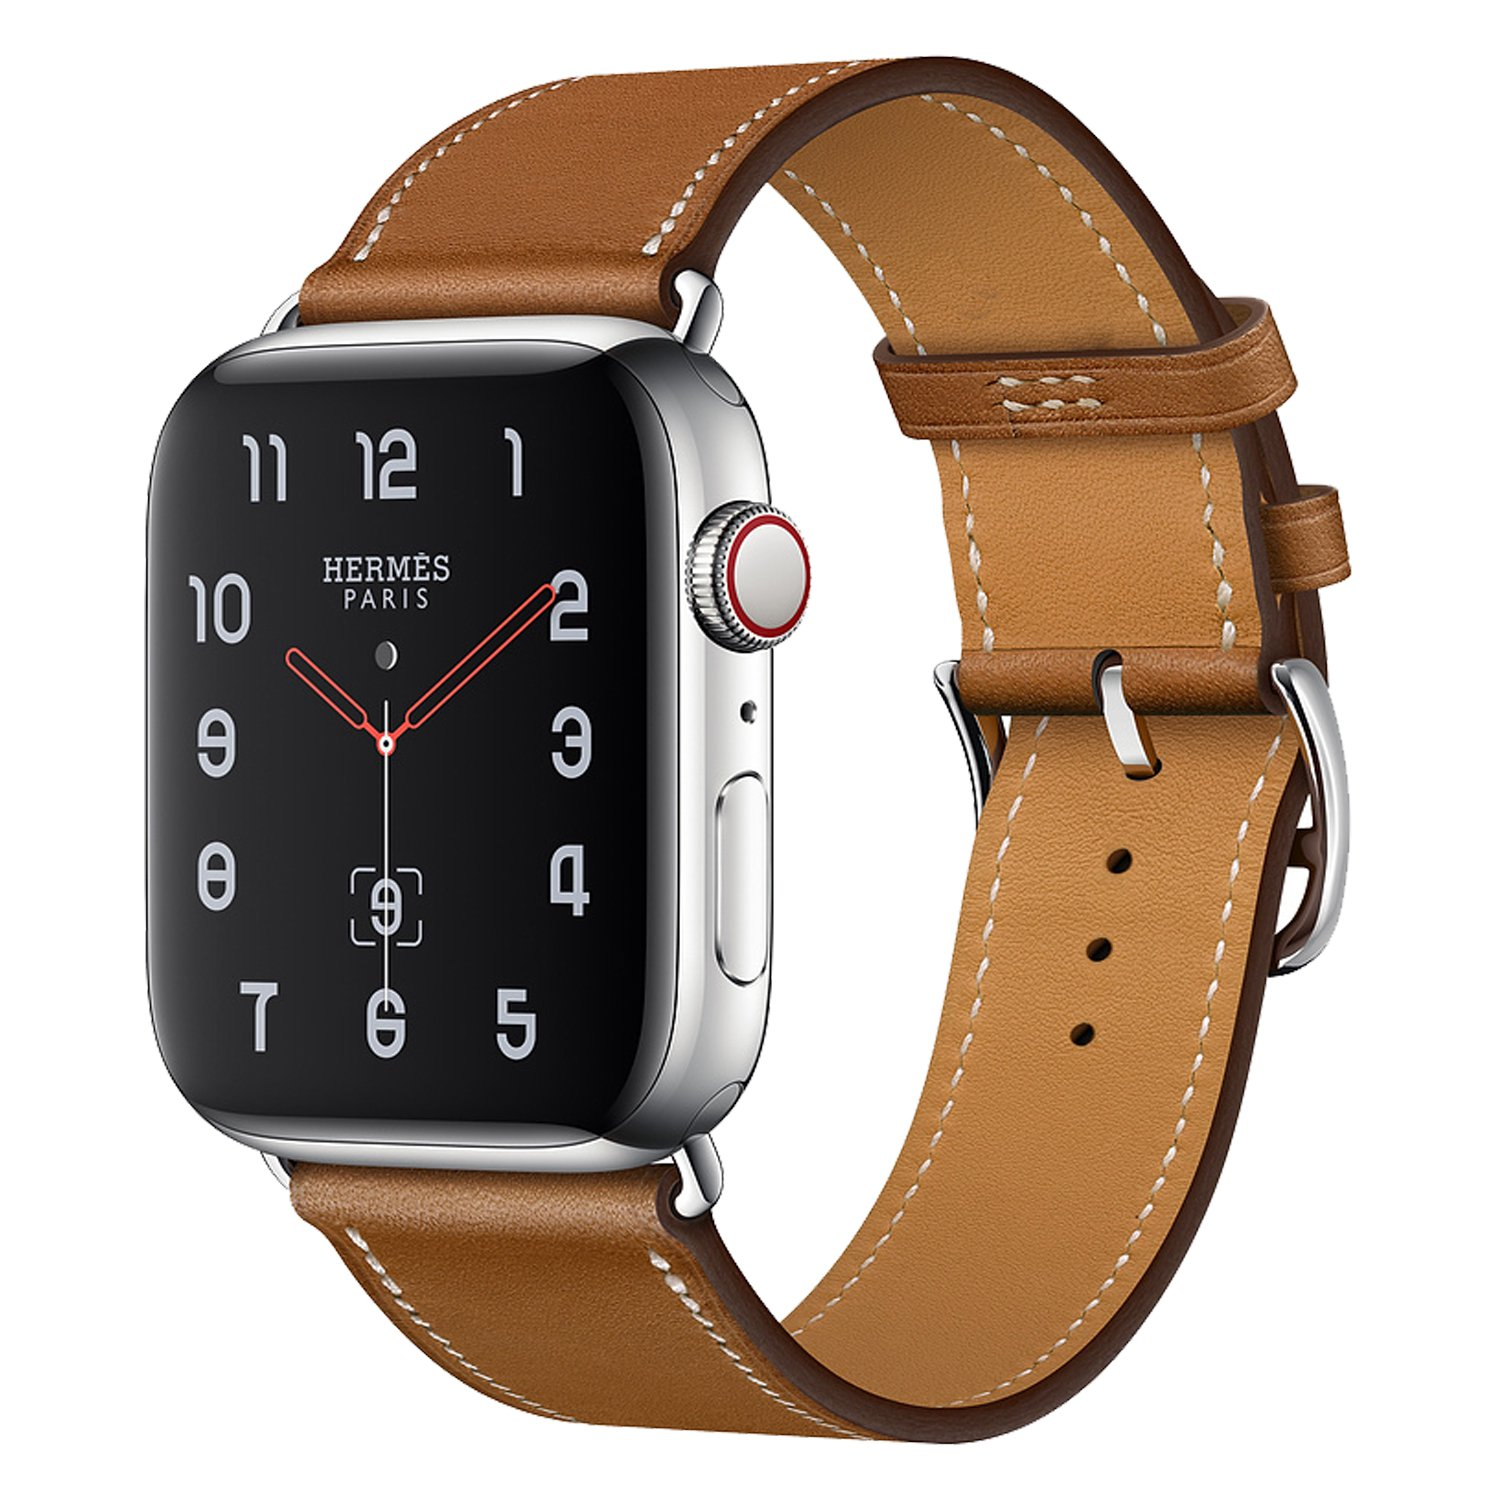 Upscale newest Leather Loop for iwatch series se 6 5 4 3 2 1 40mm 44mm Strap for Apple Watch 38mm 42mm Band NMuy